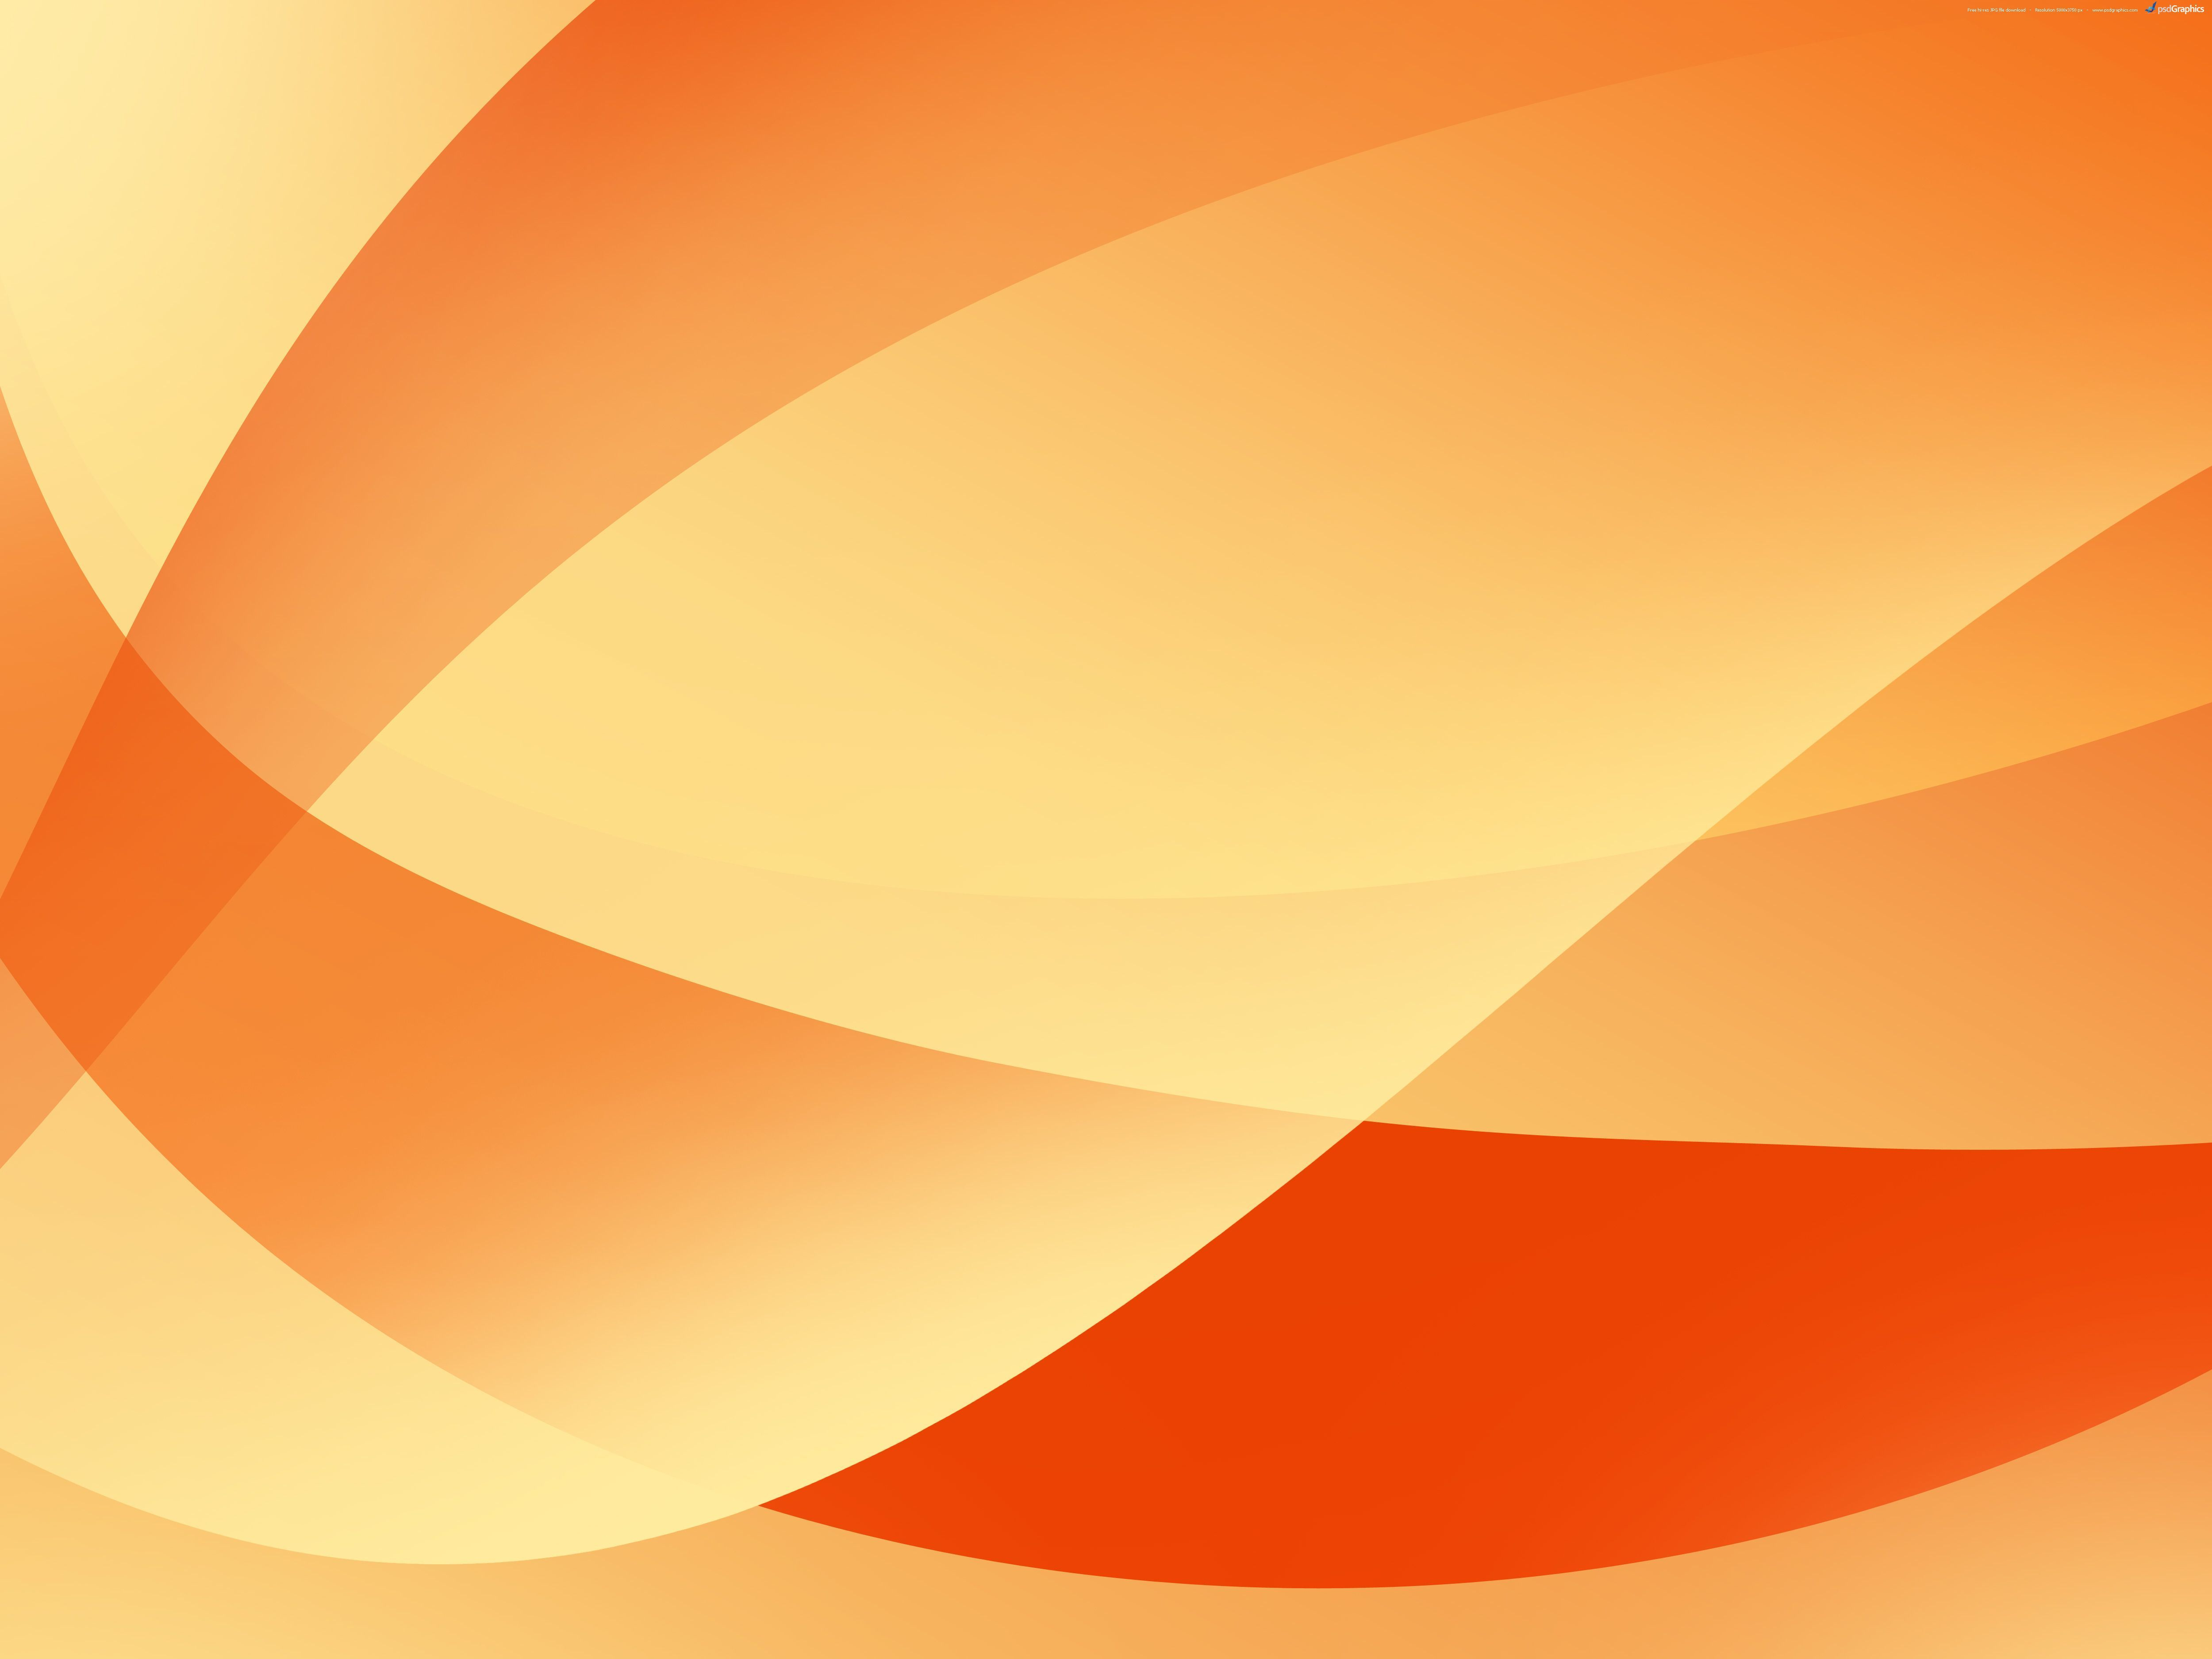 Abstract Orange Backgrounds Psdgraphics Wallpaper Abstrak Abstrak Gambar Latar Belakang